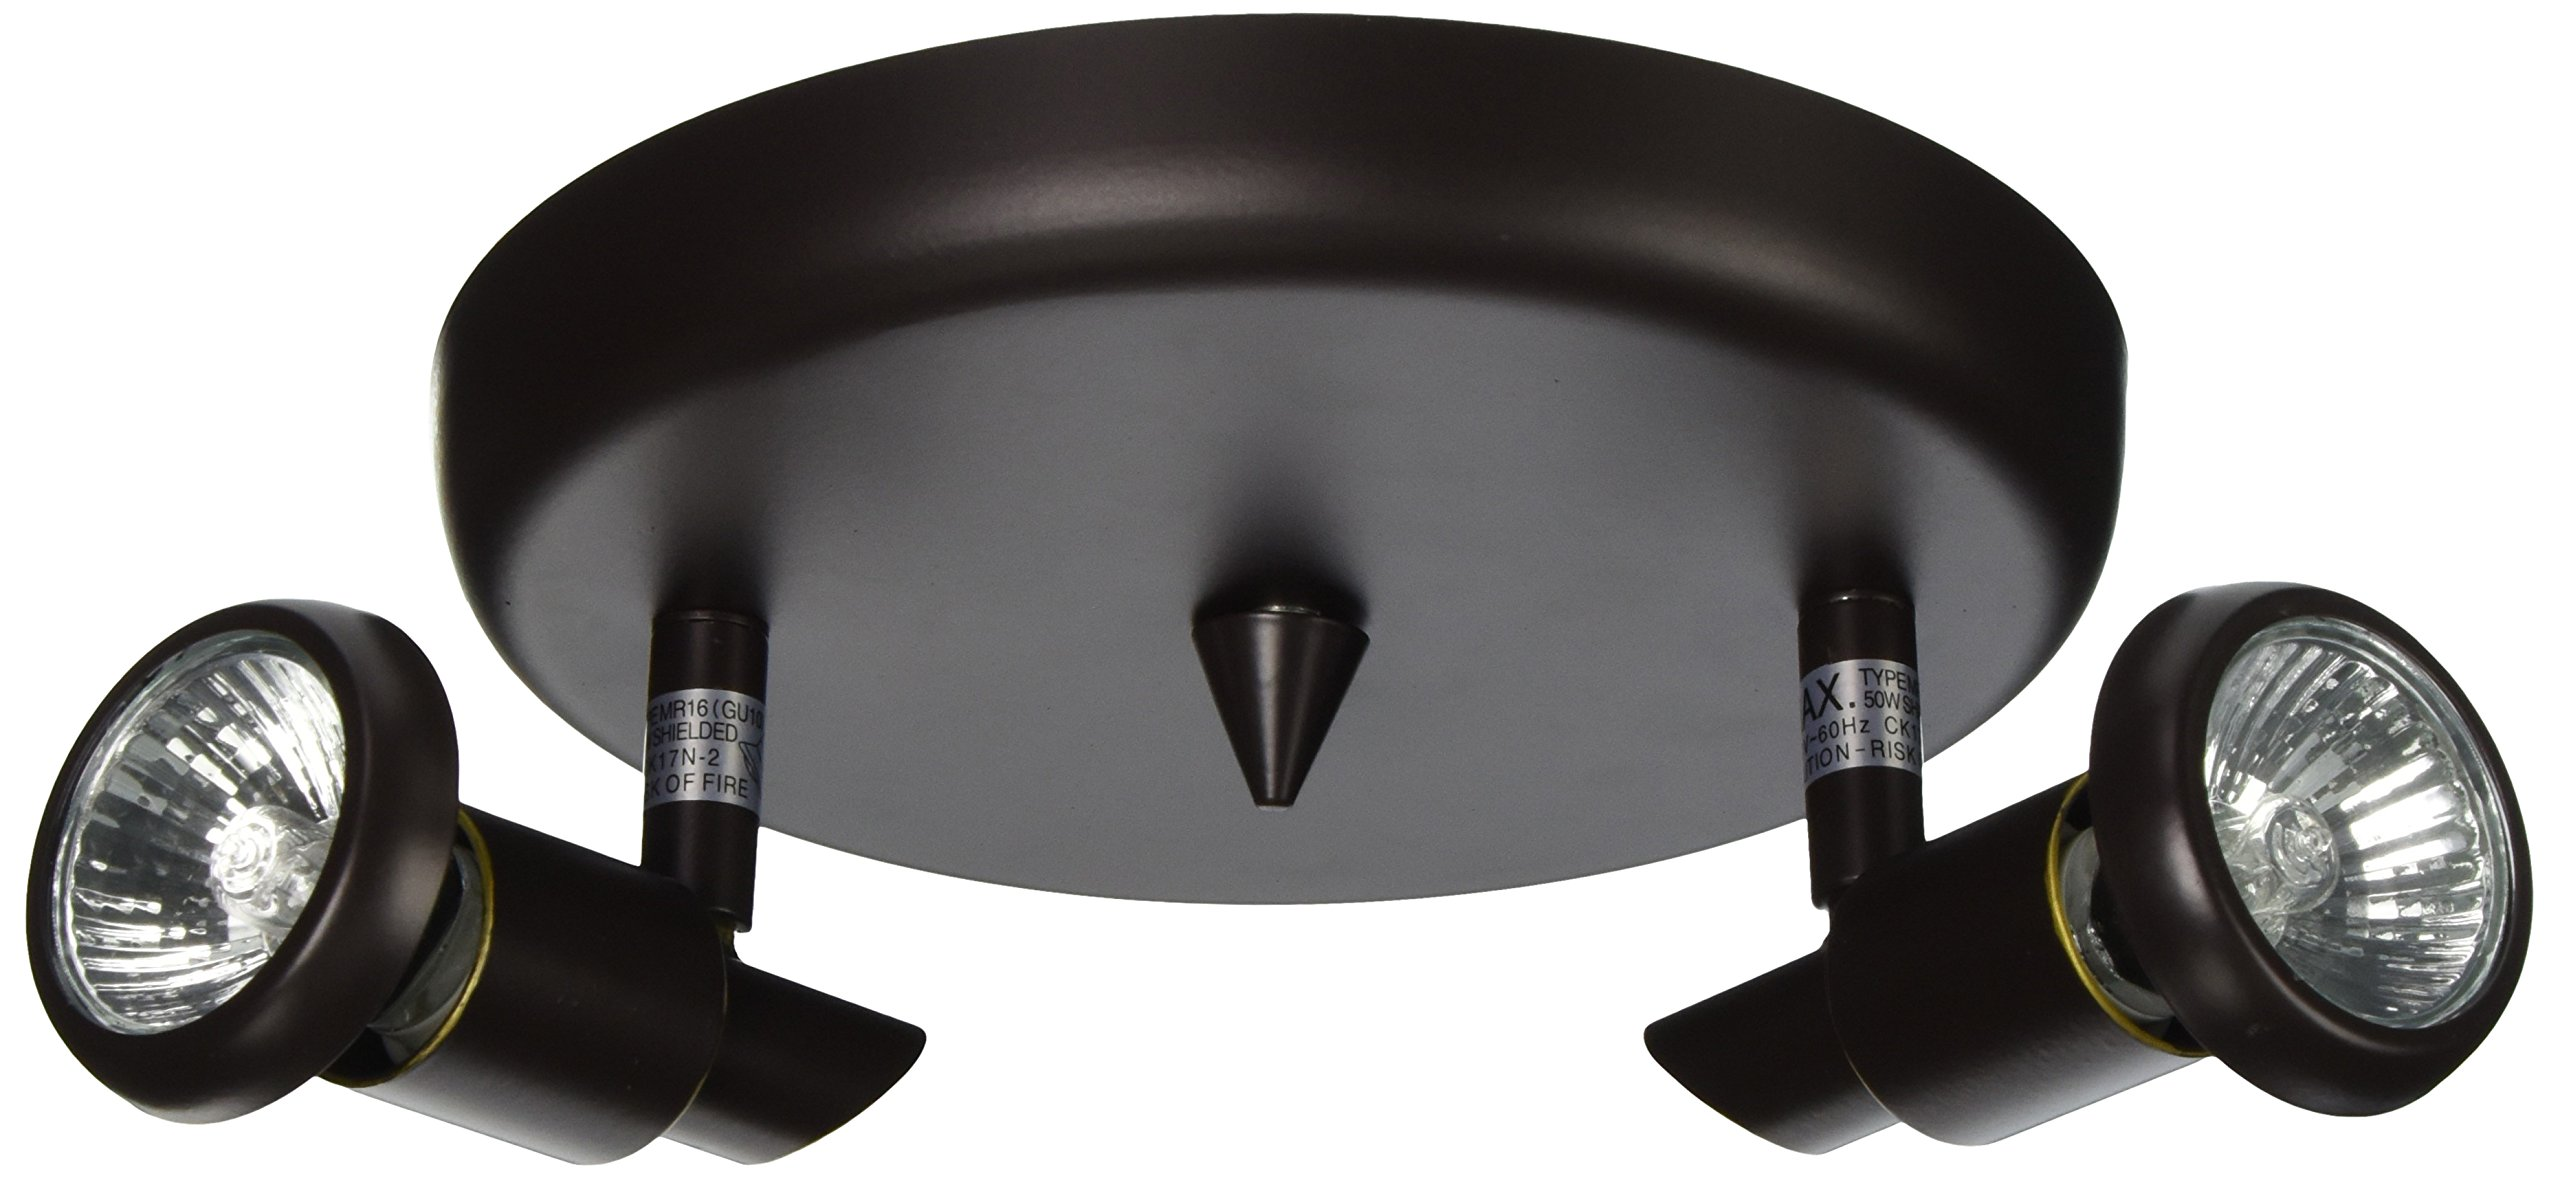 Artcraft Lighting Shuttle 2-Light Round Canopy Track Light, Oil-Rubbed Bronze